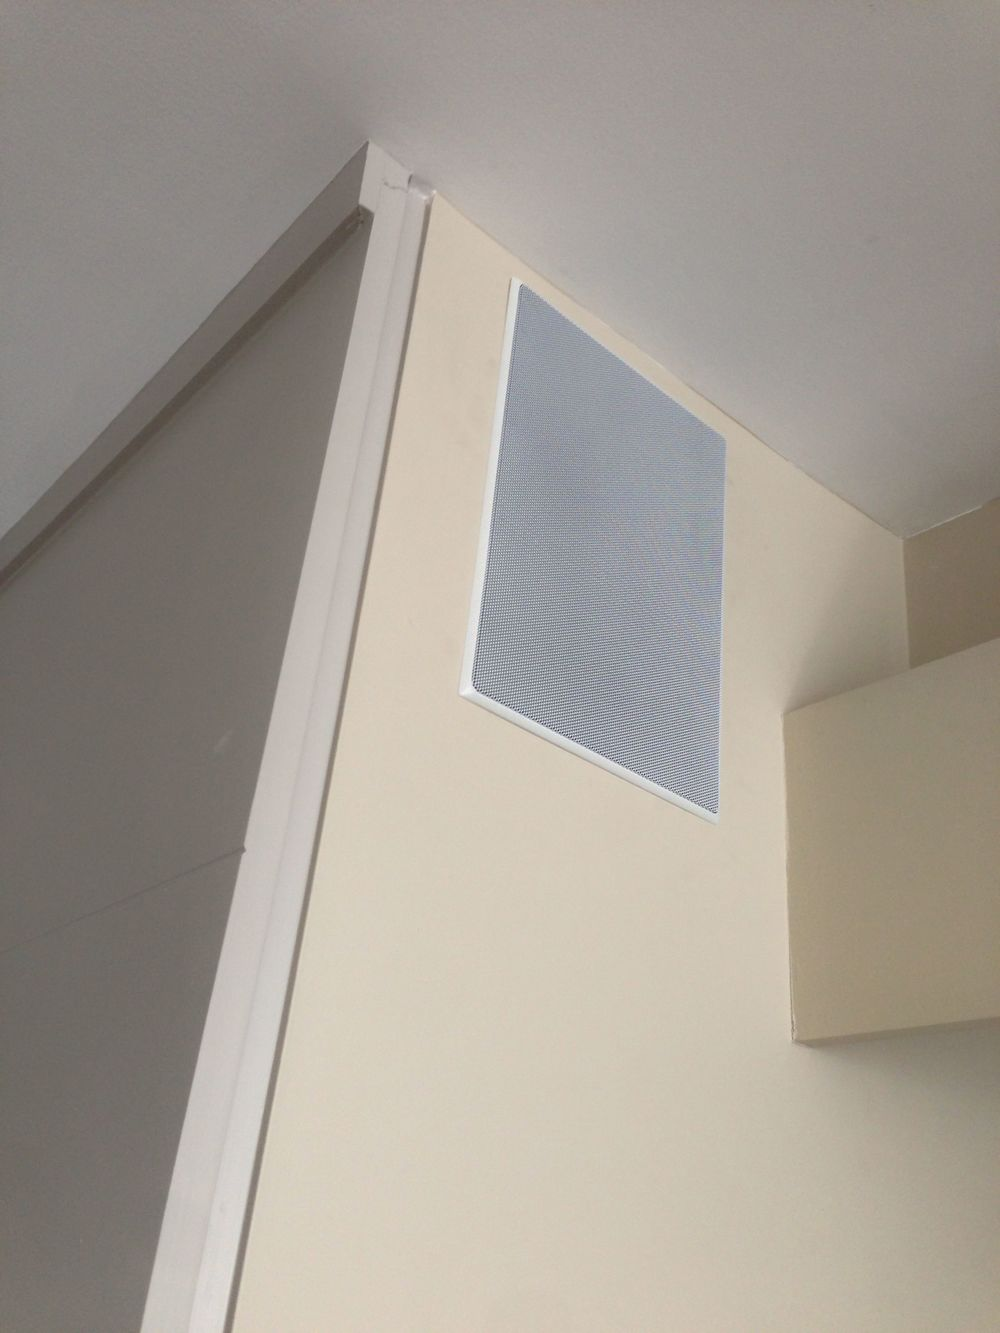 The speakers are high-performance in-wall Sonance speakers.